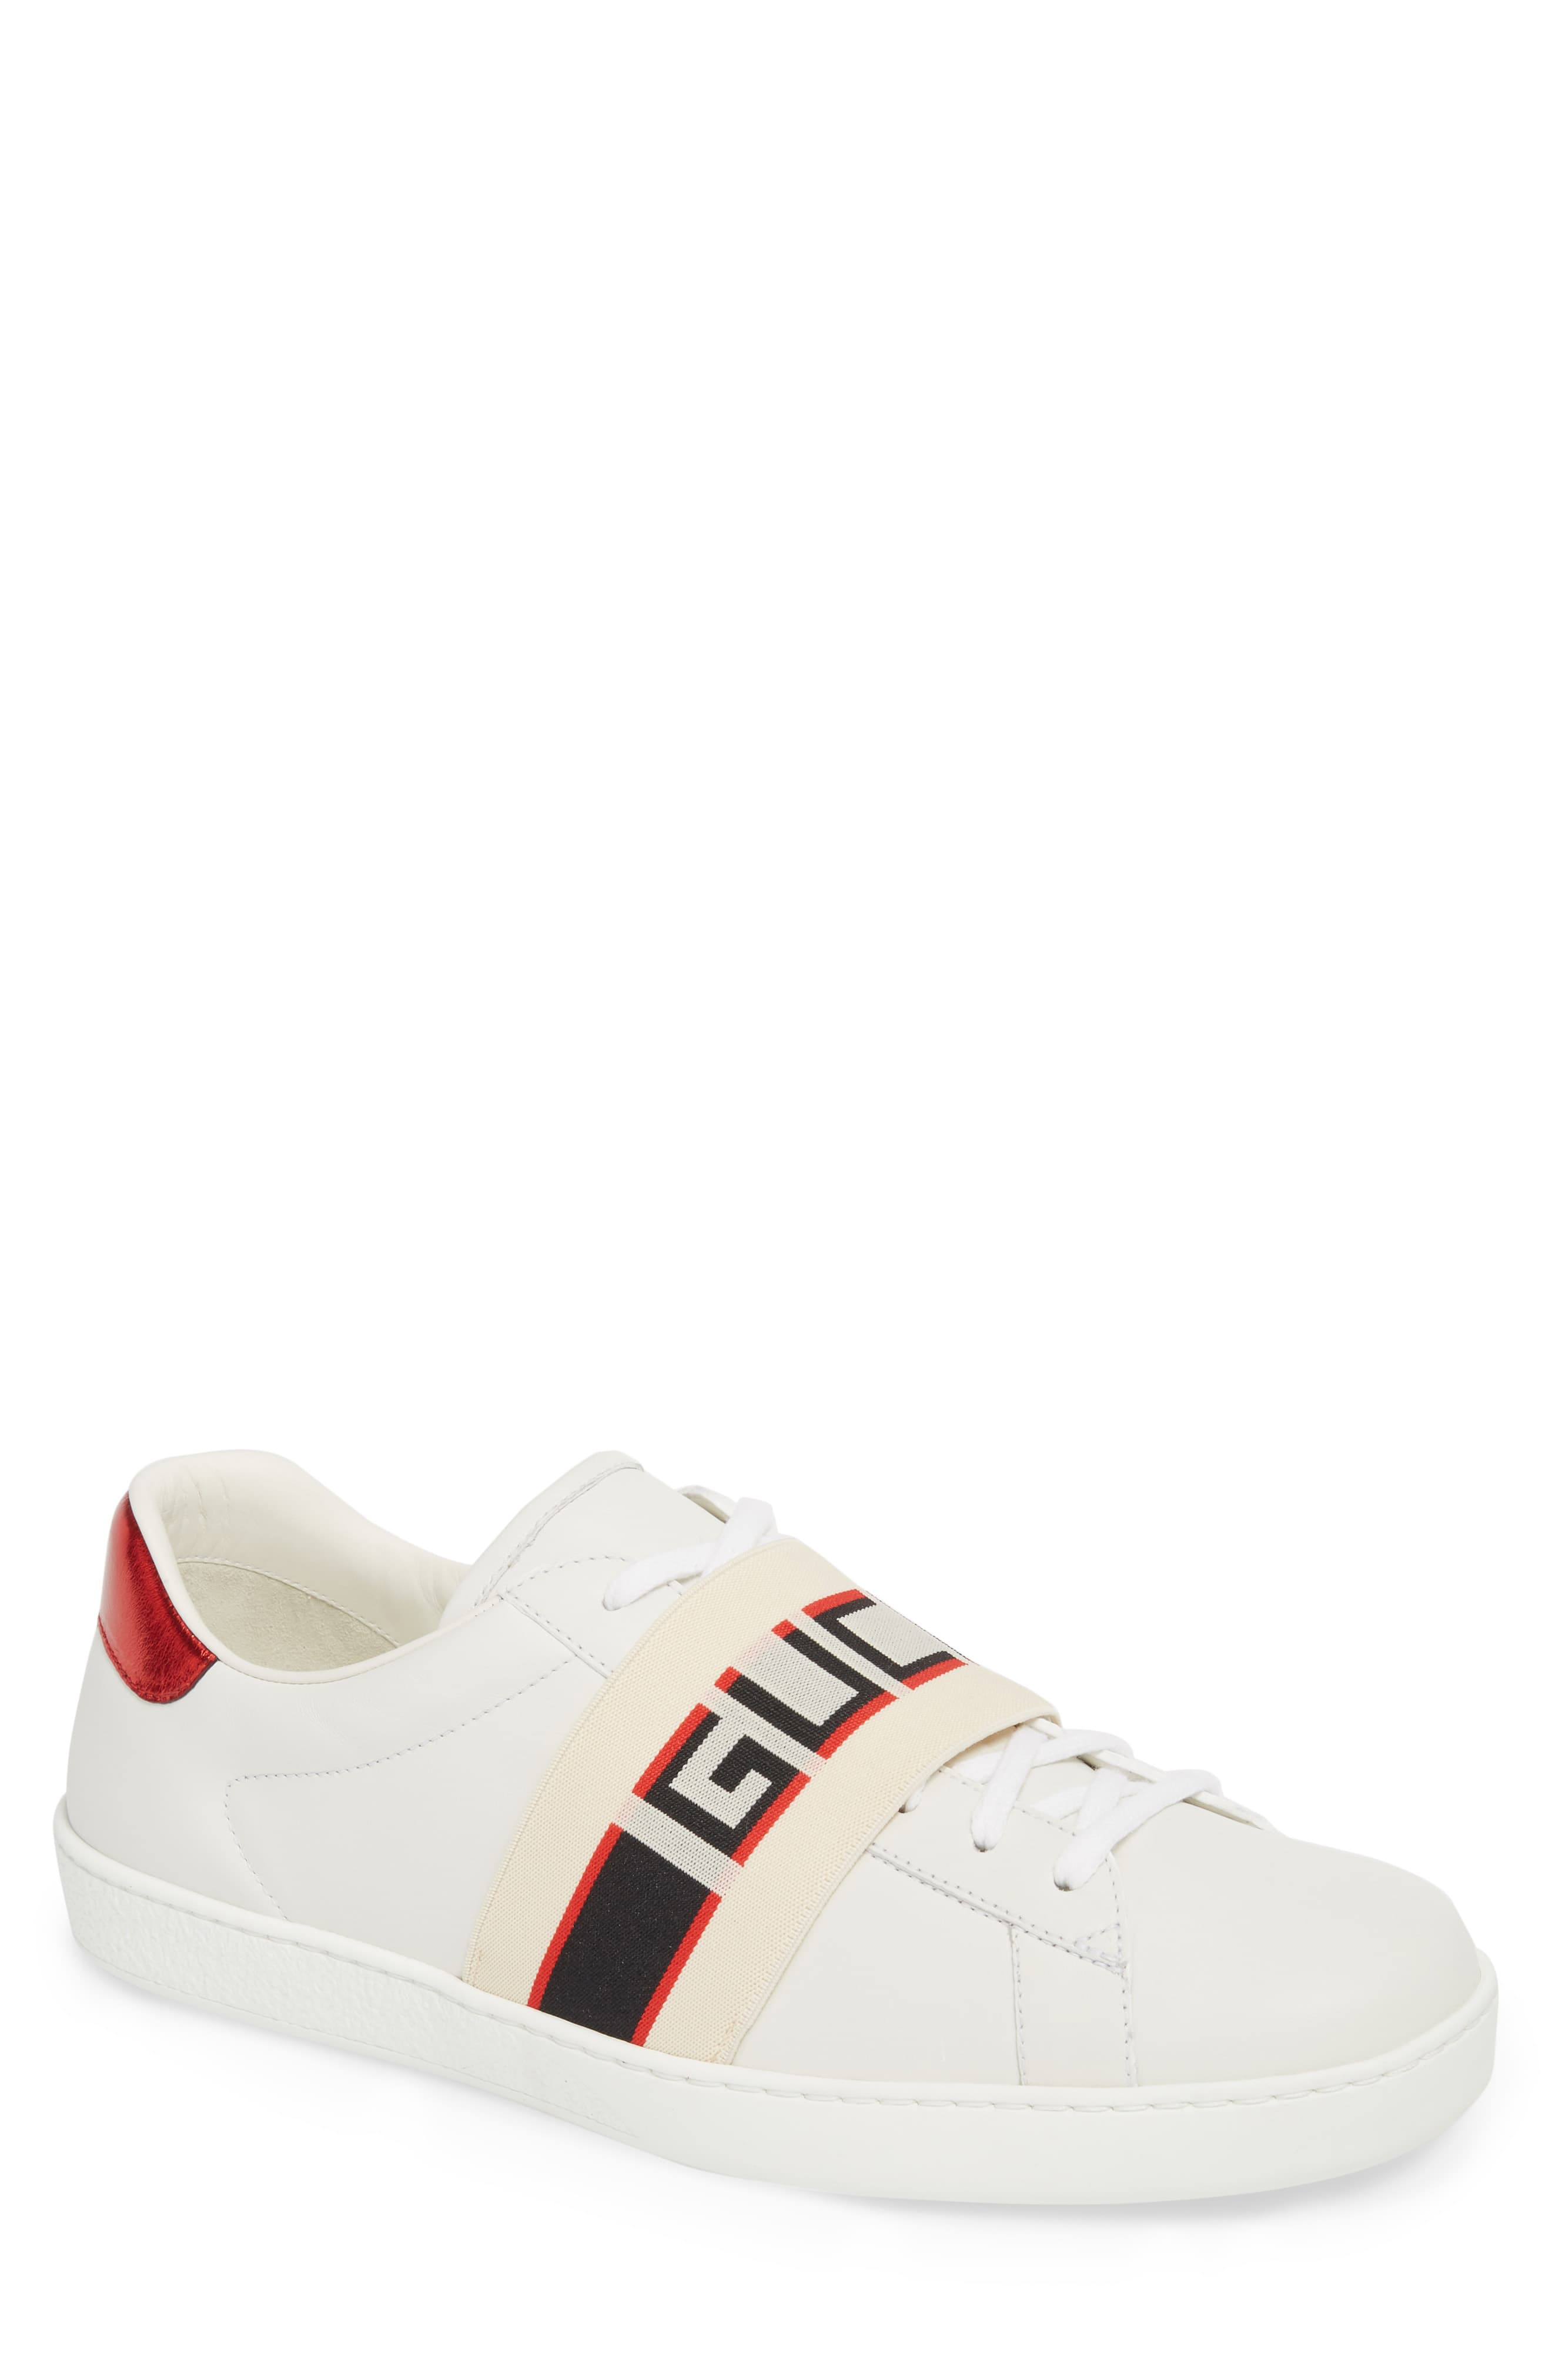 2a6be14463 Men's Gucci New Ace Stripe Leather Sneaker, Size 7US / 6UK - White